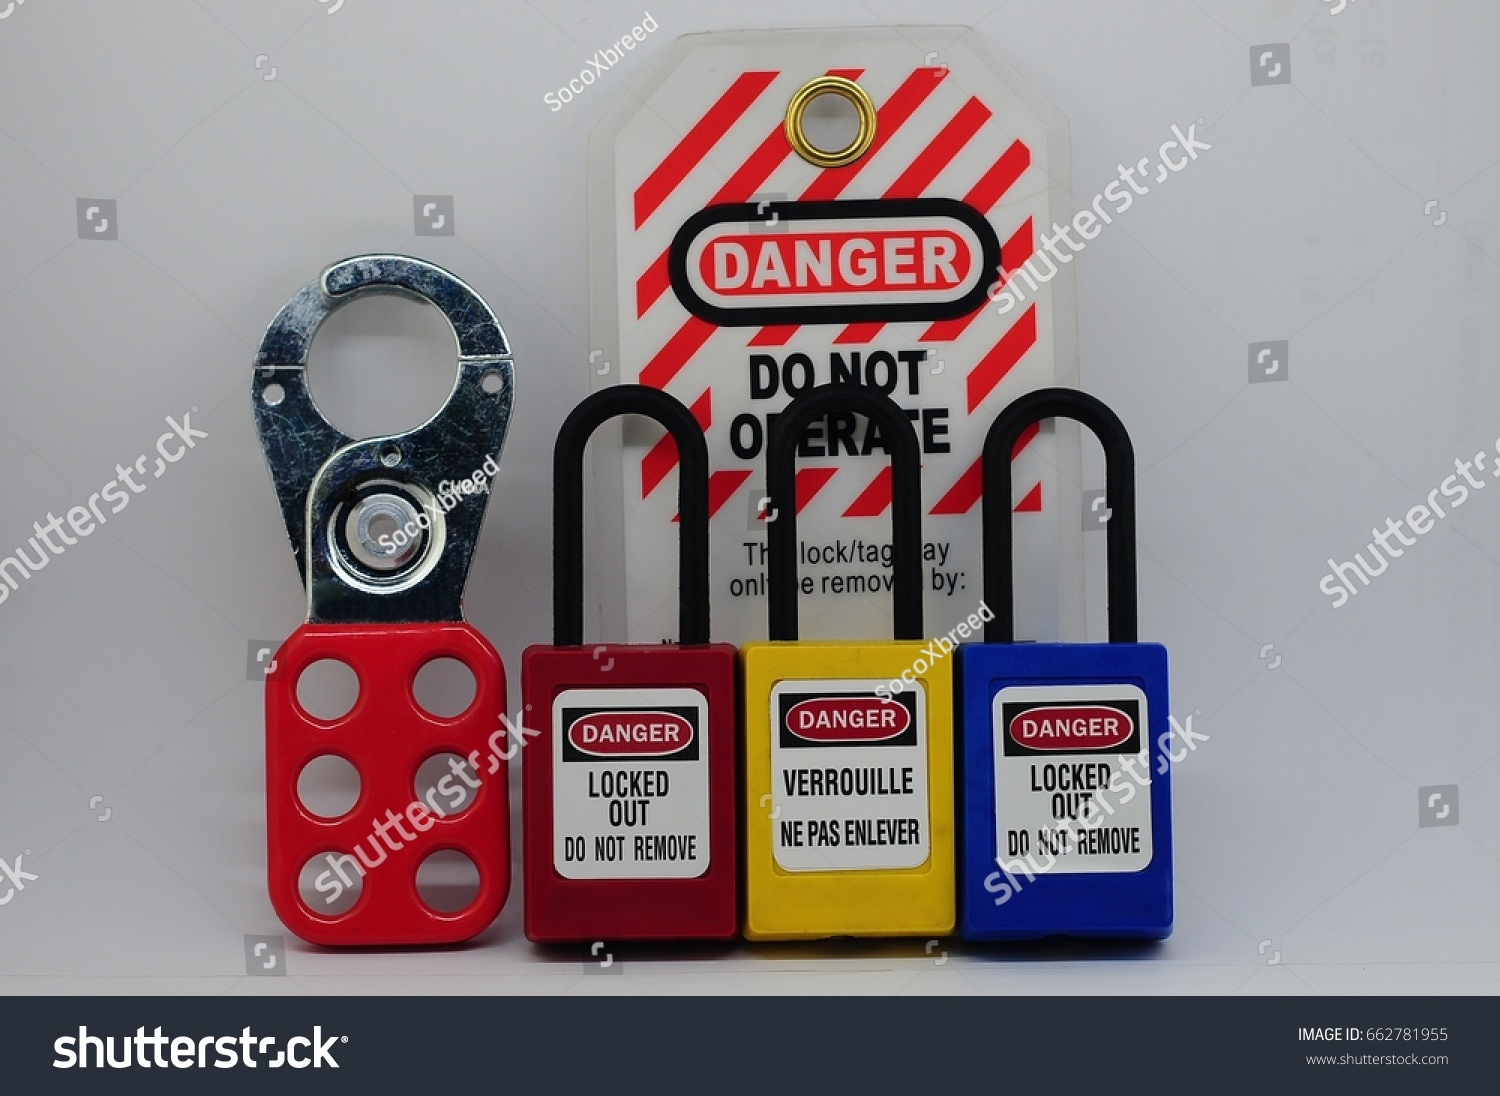 Lock out & Tag out,Lock out station , machine - specific lockout device and lockout point #662781955